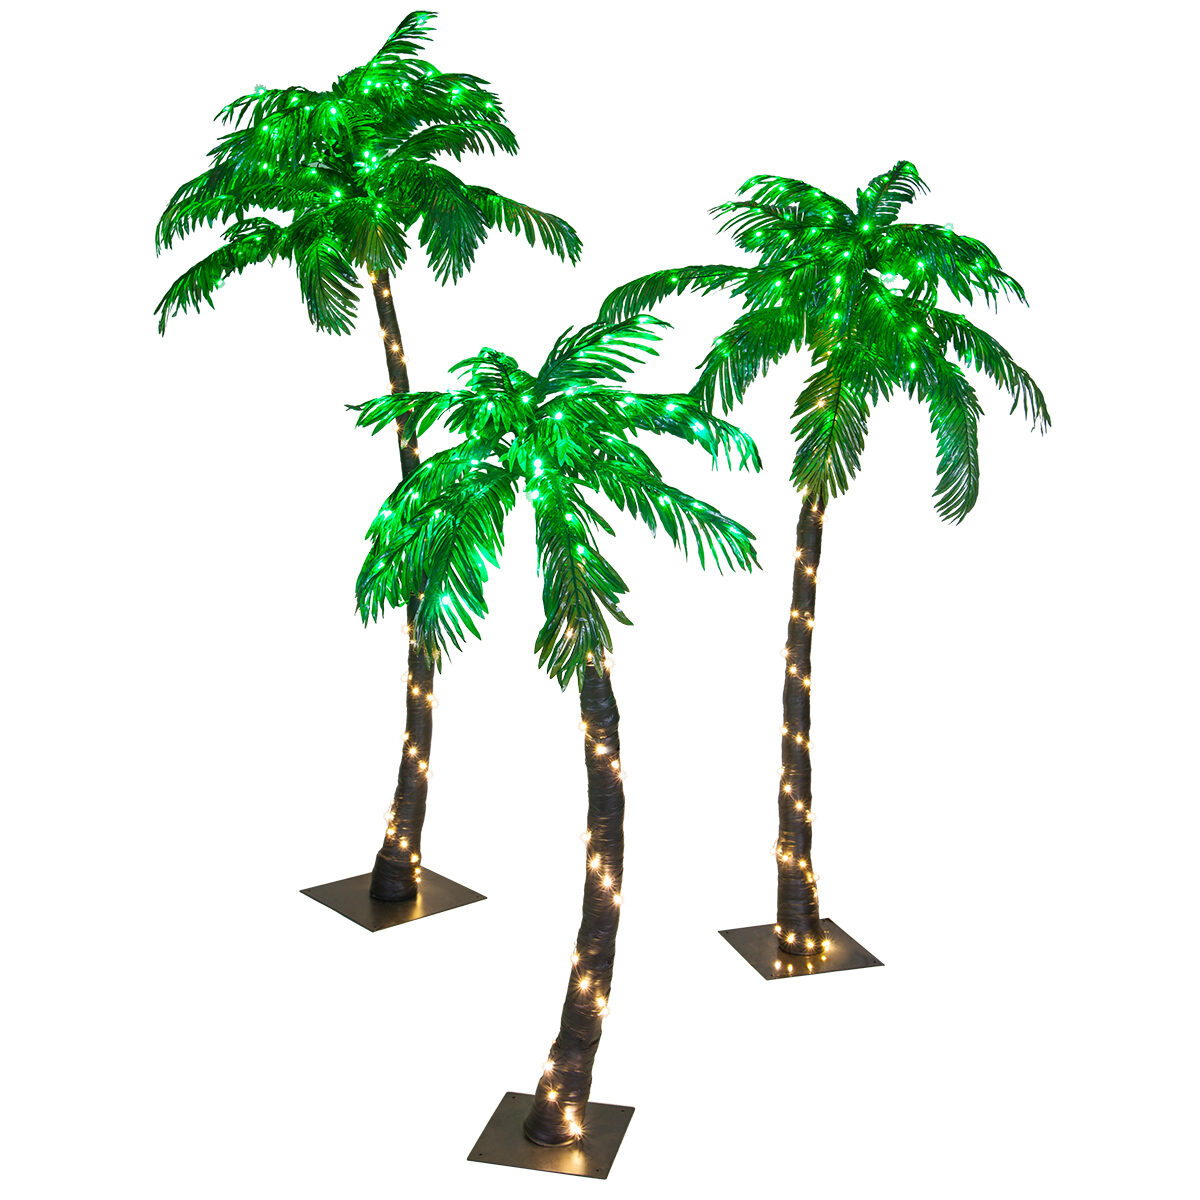 Curved LED Lighted Palm Tree with Green Canopy  sc 1 st  Yard Envy & Curved LED Lighted Palm Tree with Green Canopy - Yard Envy